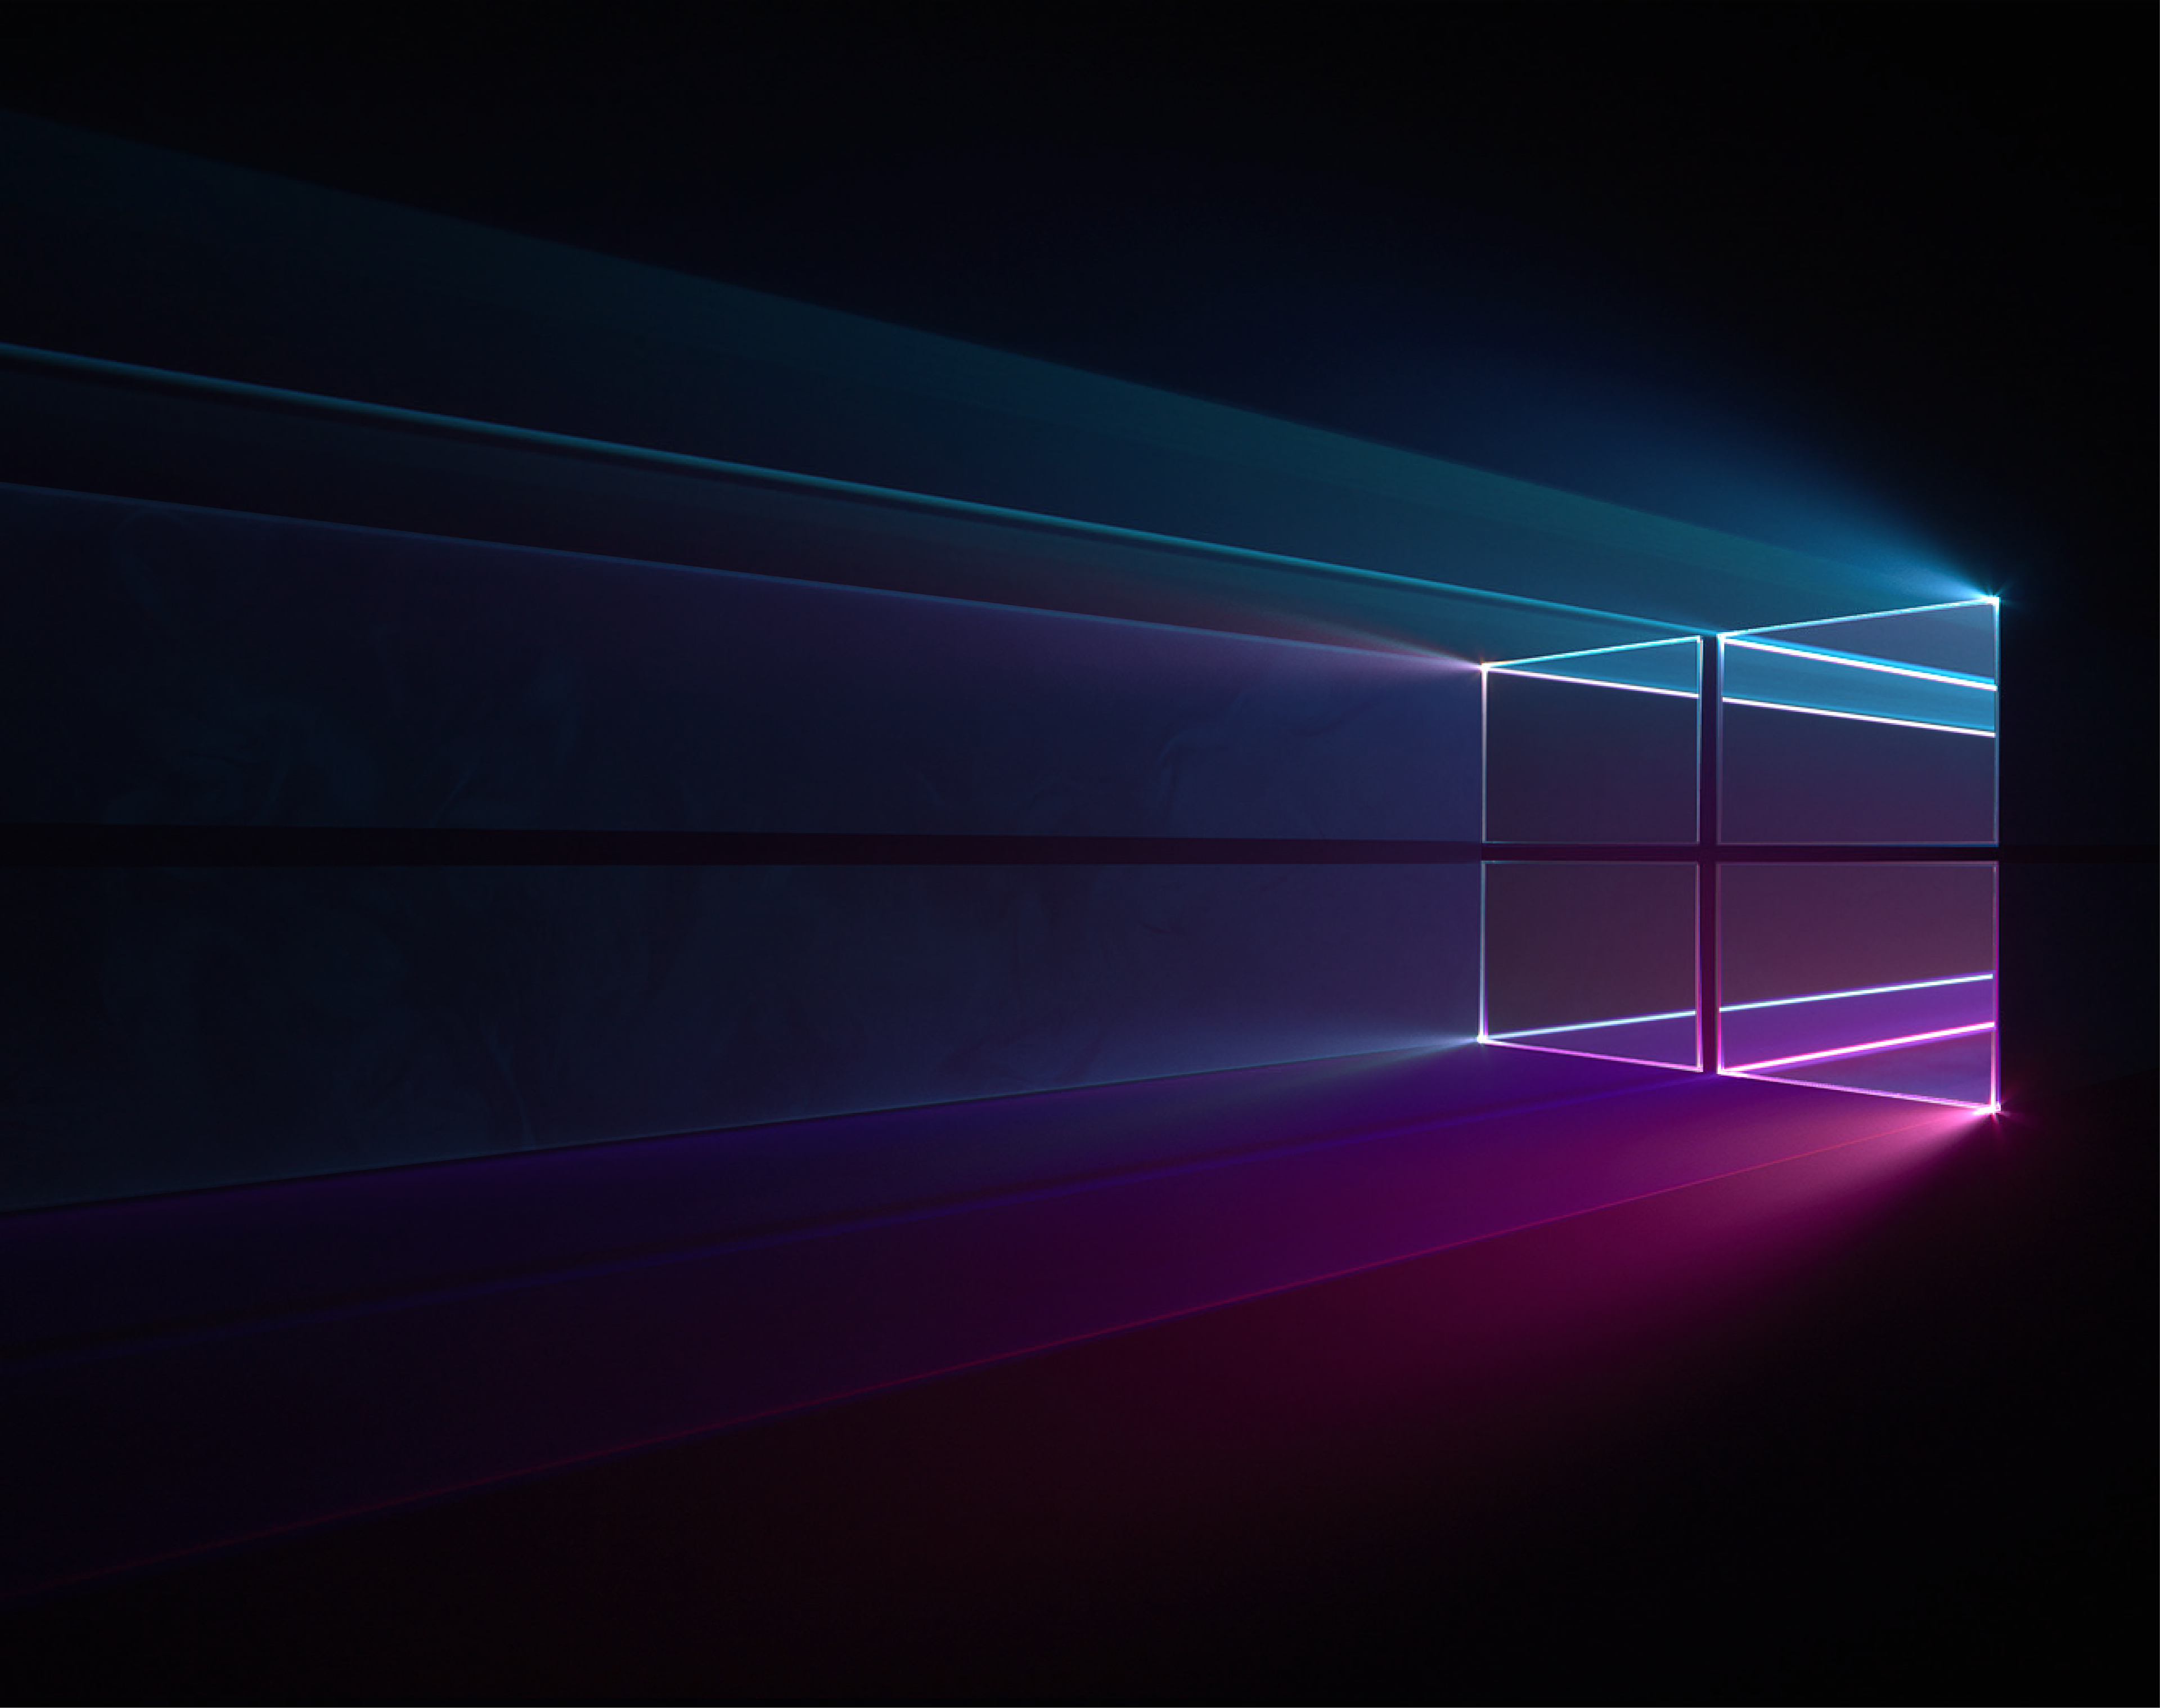 windows-10-hero-3840x3036-dark-black-4k-18341.png